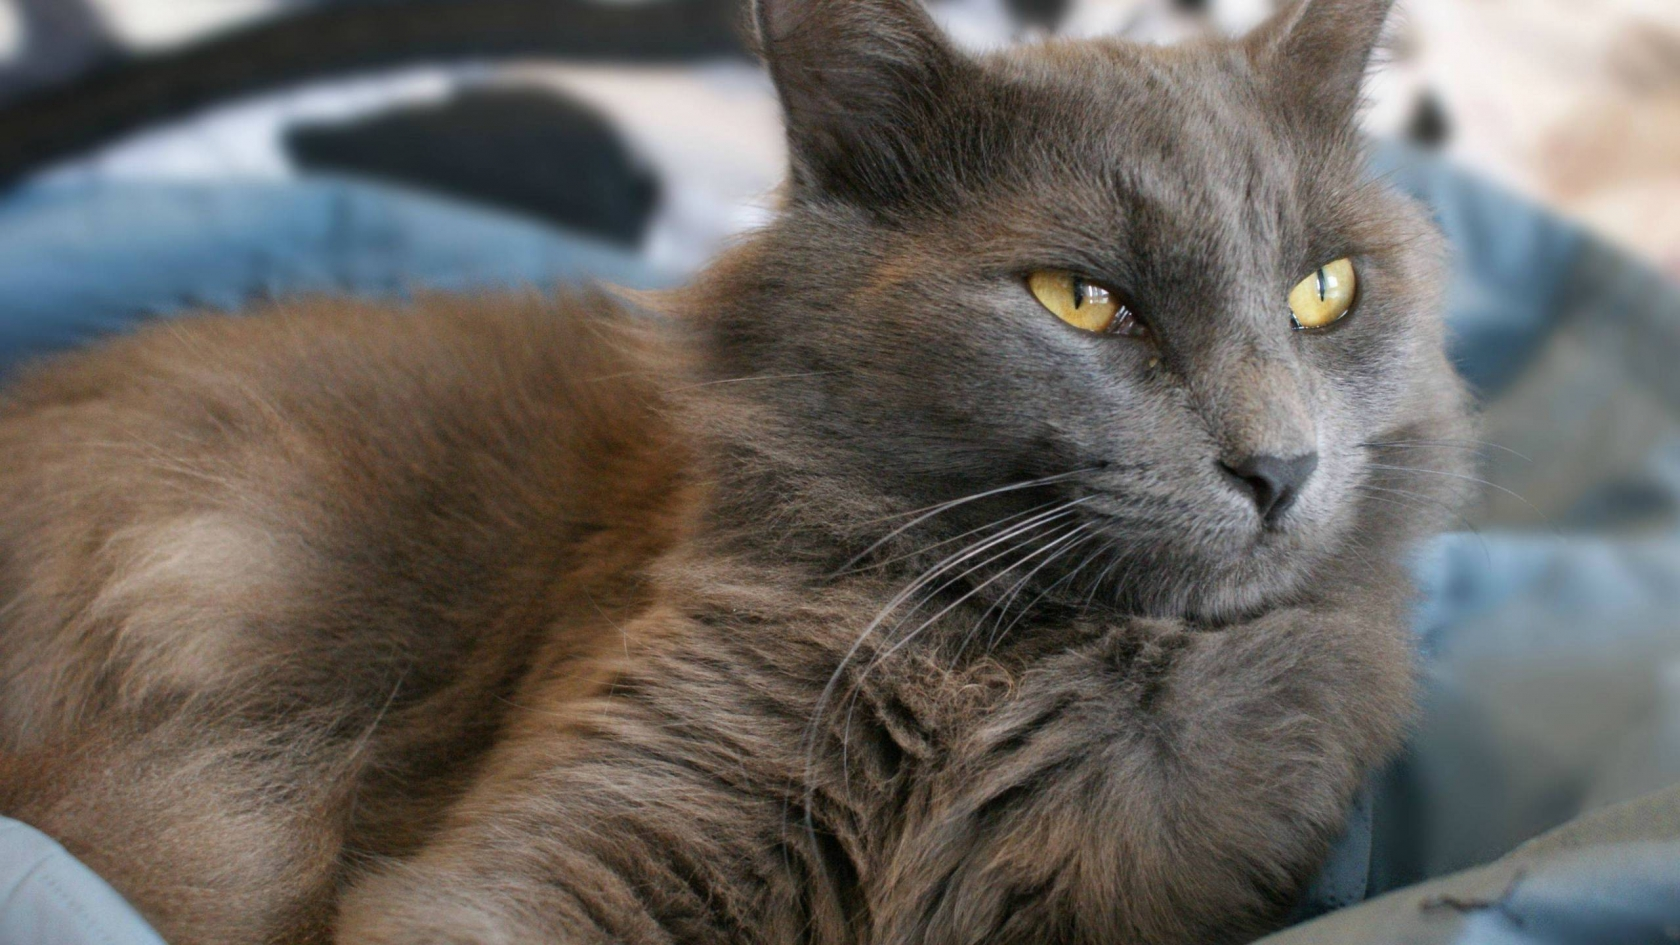 Yellow Eyes Nebelung Cat for 1680 x 945 HDTV resolution